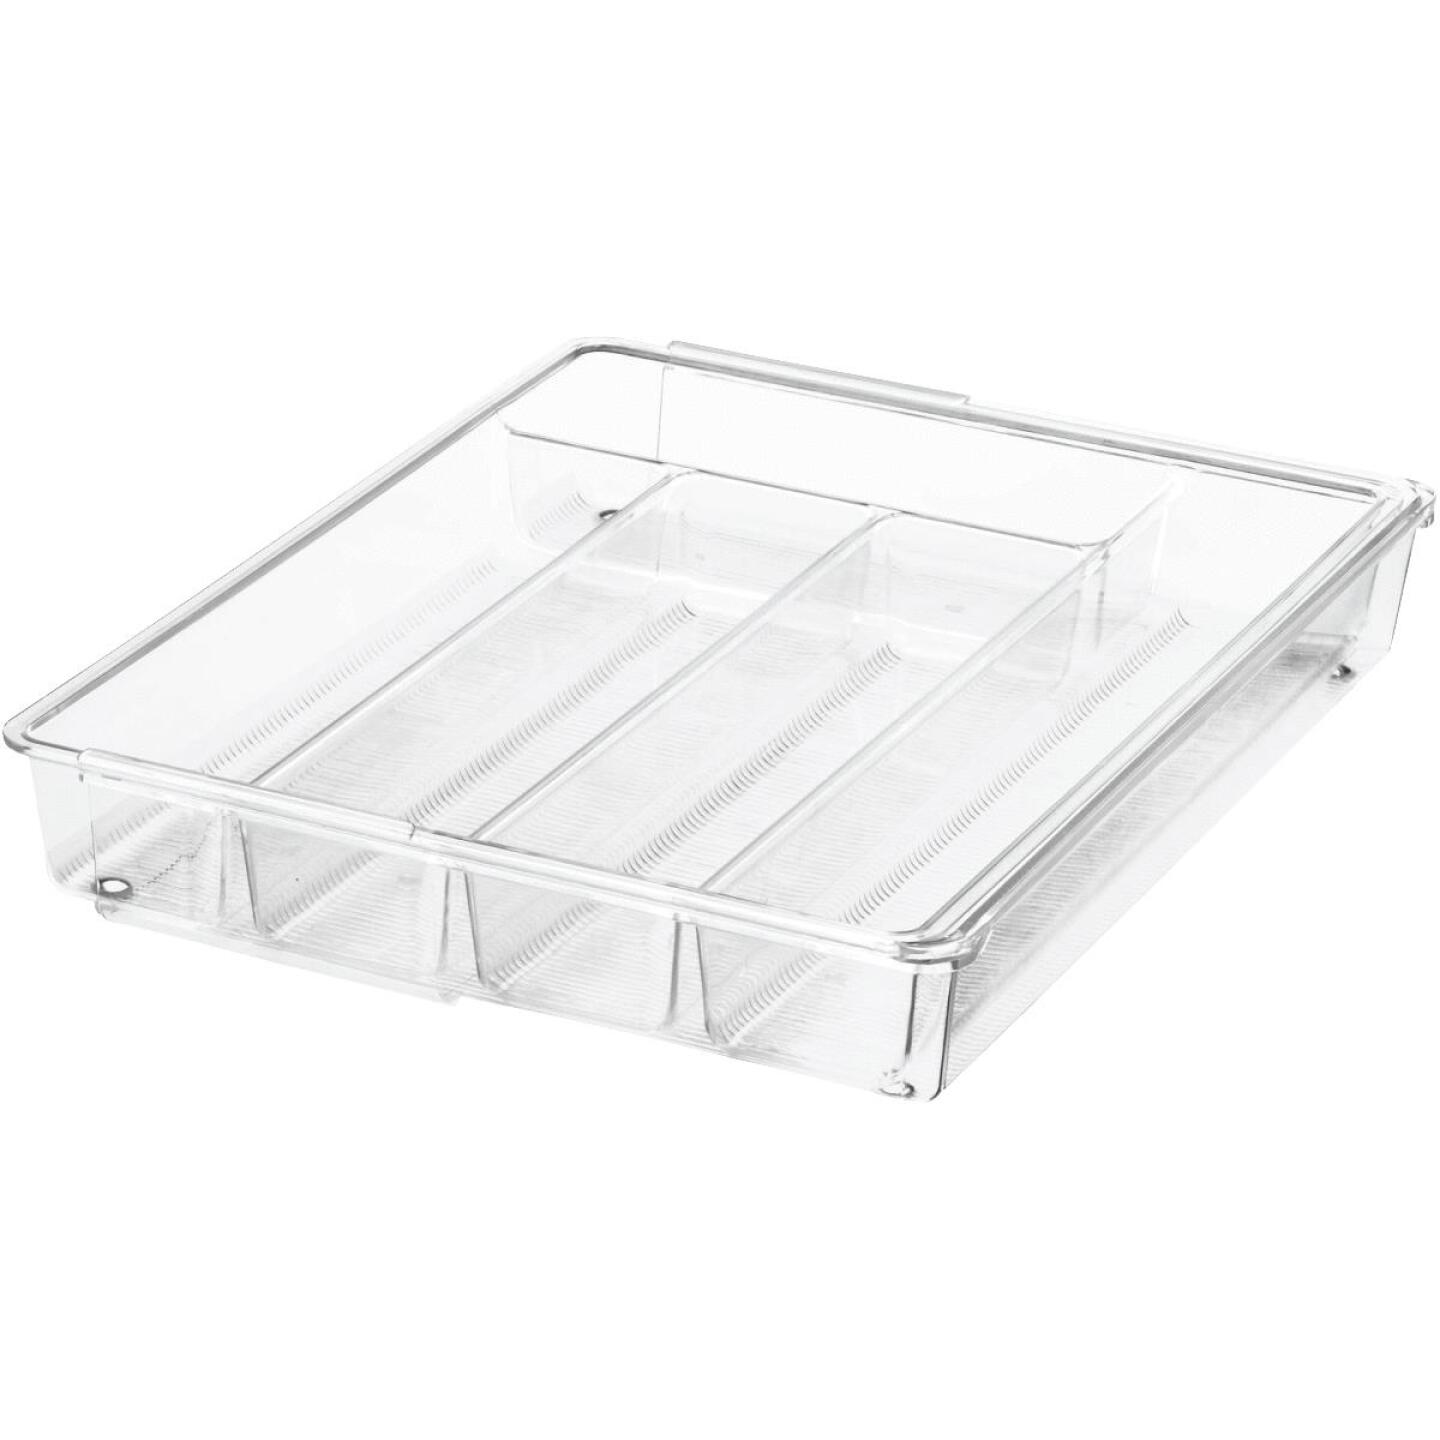 iDesign Linus 11.25 In. W. x 14.25 In. L. x 2.25 In. D. Clear Cutlery Tray Image 1